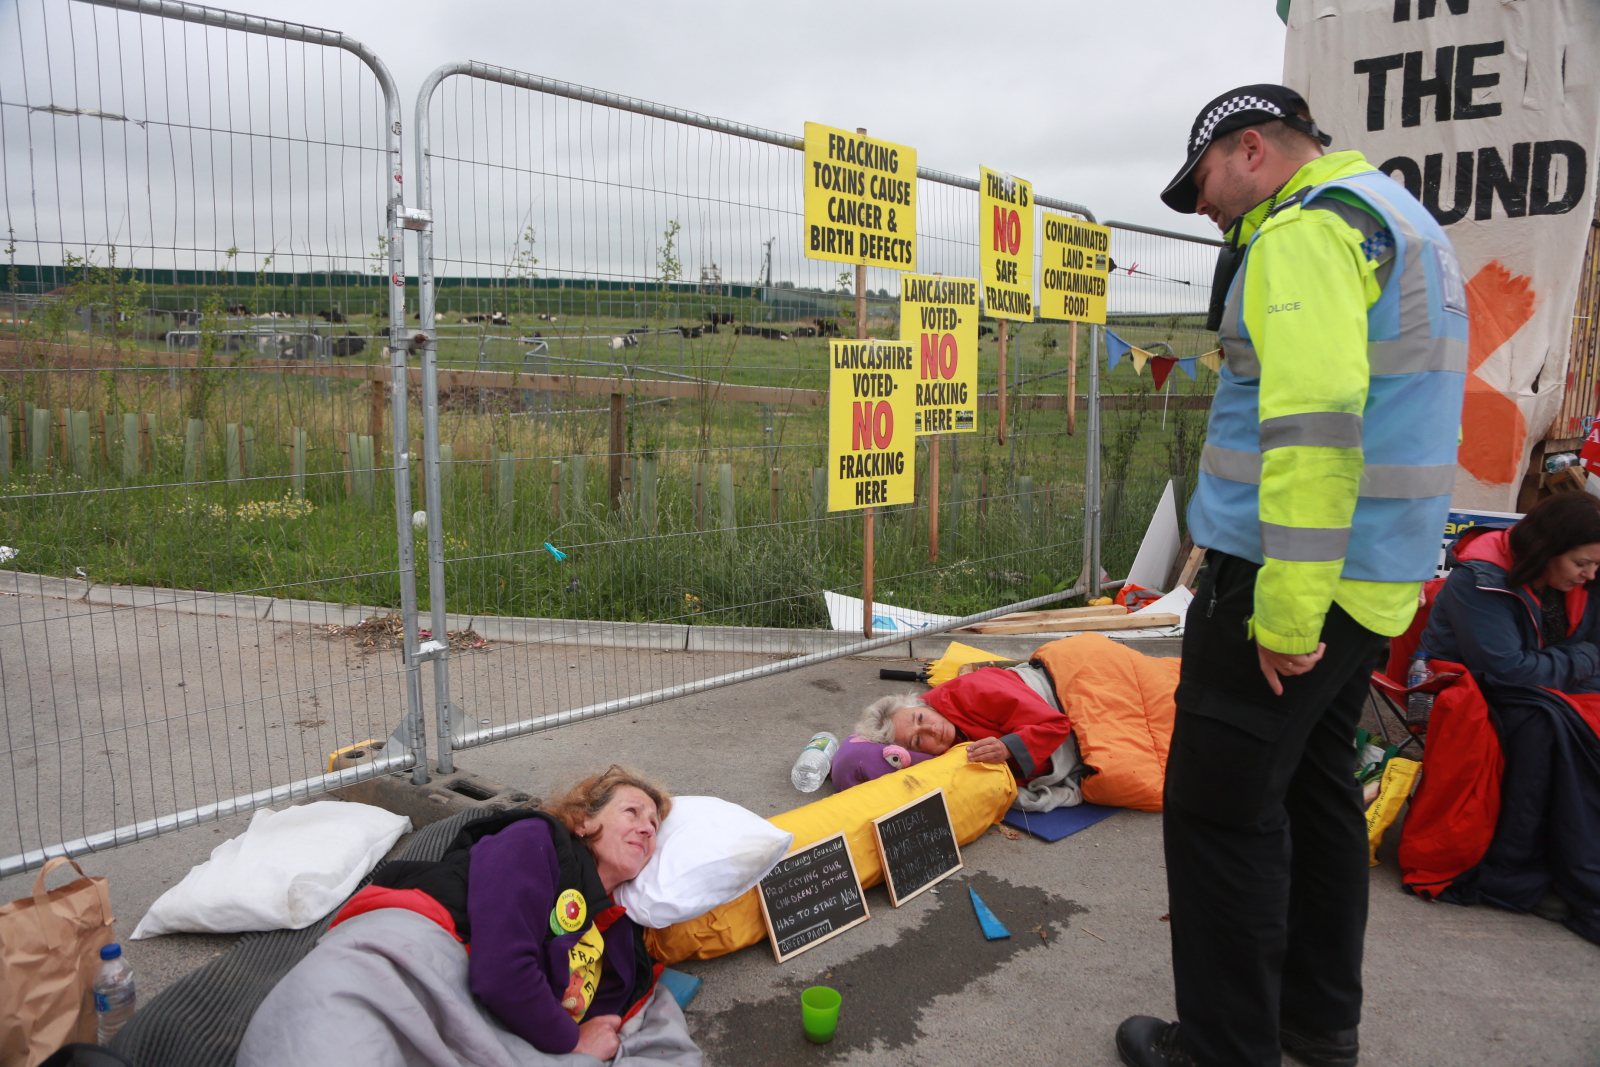 English local councillor Gina Dowding protests a fracking test drill site at Preston Road in Lancashire on July 3 2017